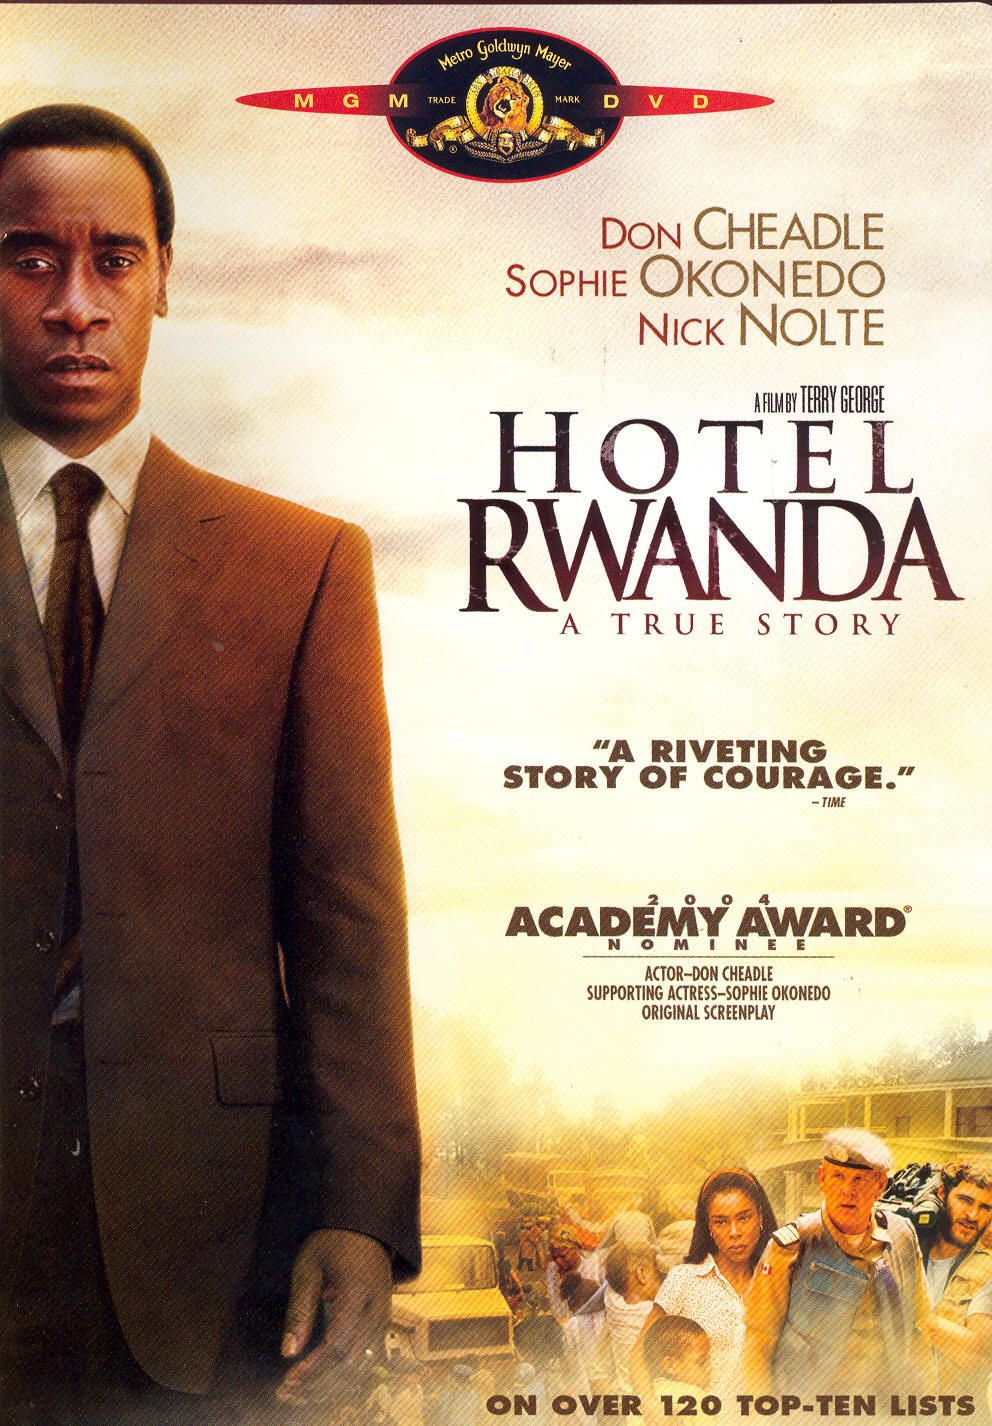 hotel rwanda christian movie film on dvd blu ray cfdb hotel hotel rwanda christian movie in the midst of horrific tragedy a hero emerges to save lives as his country descends into madness five star hotel